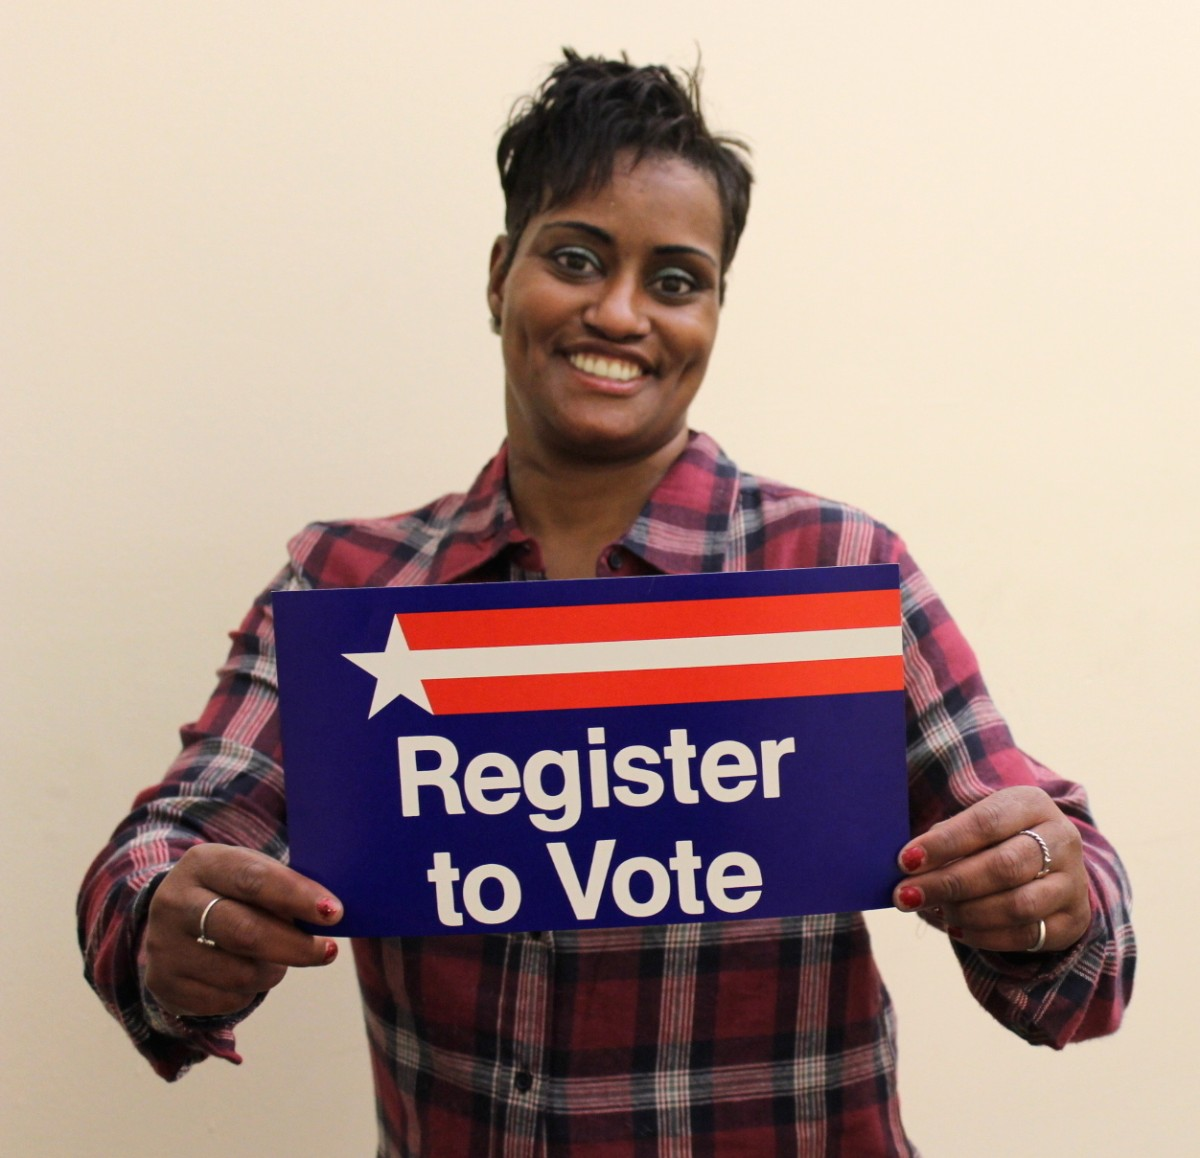 Lakesha has helped more than 50 people register to vote this month. Image credit: Denise Miller.